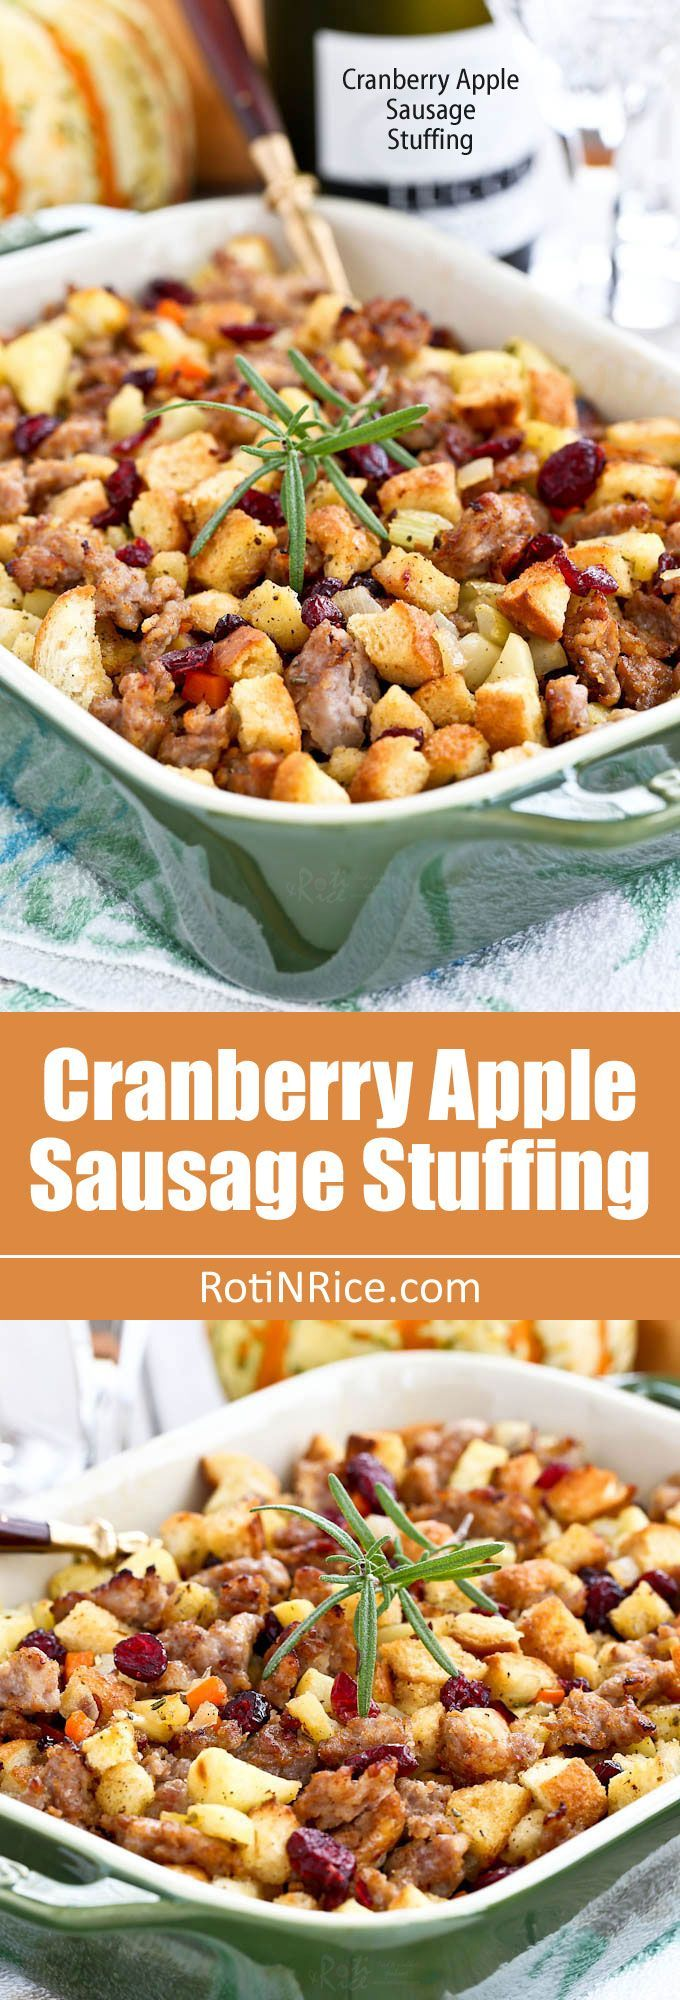 Sweet and savory Cranberry Apple Sausage Stuffing packed with flavor. Easy to prepare. A must-have for the holidays. | http://RotiNRice.com